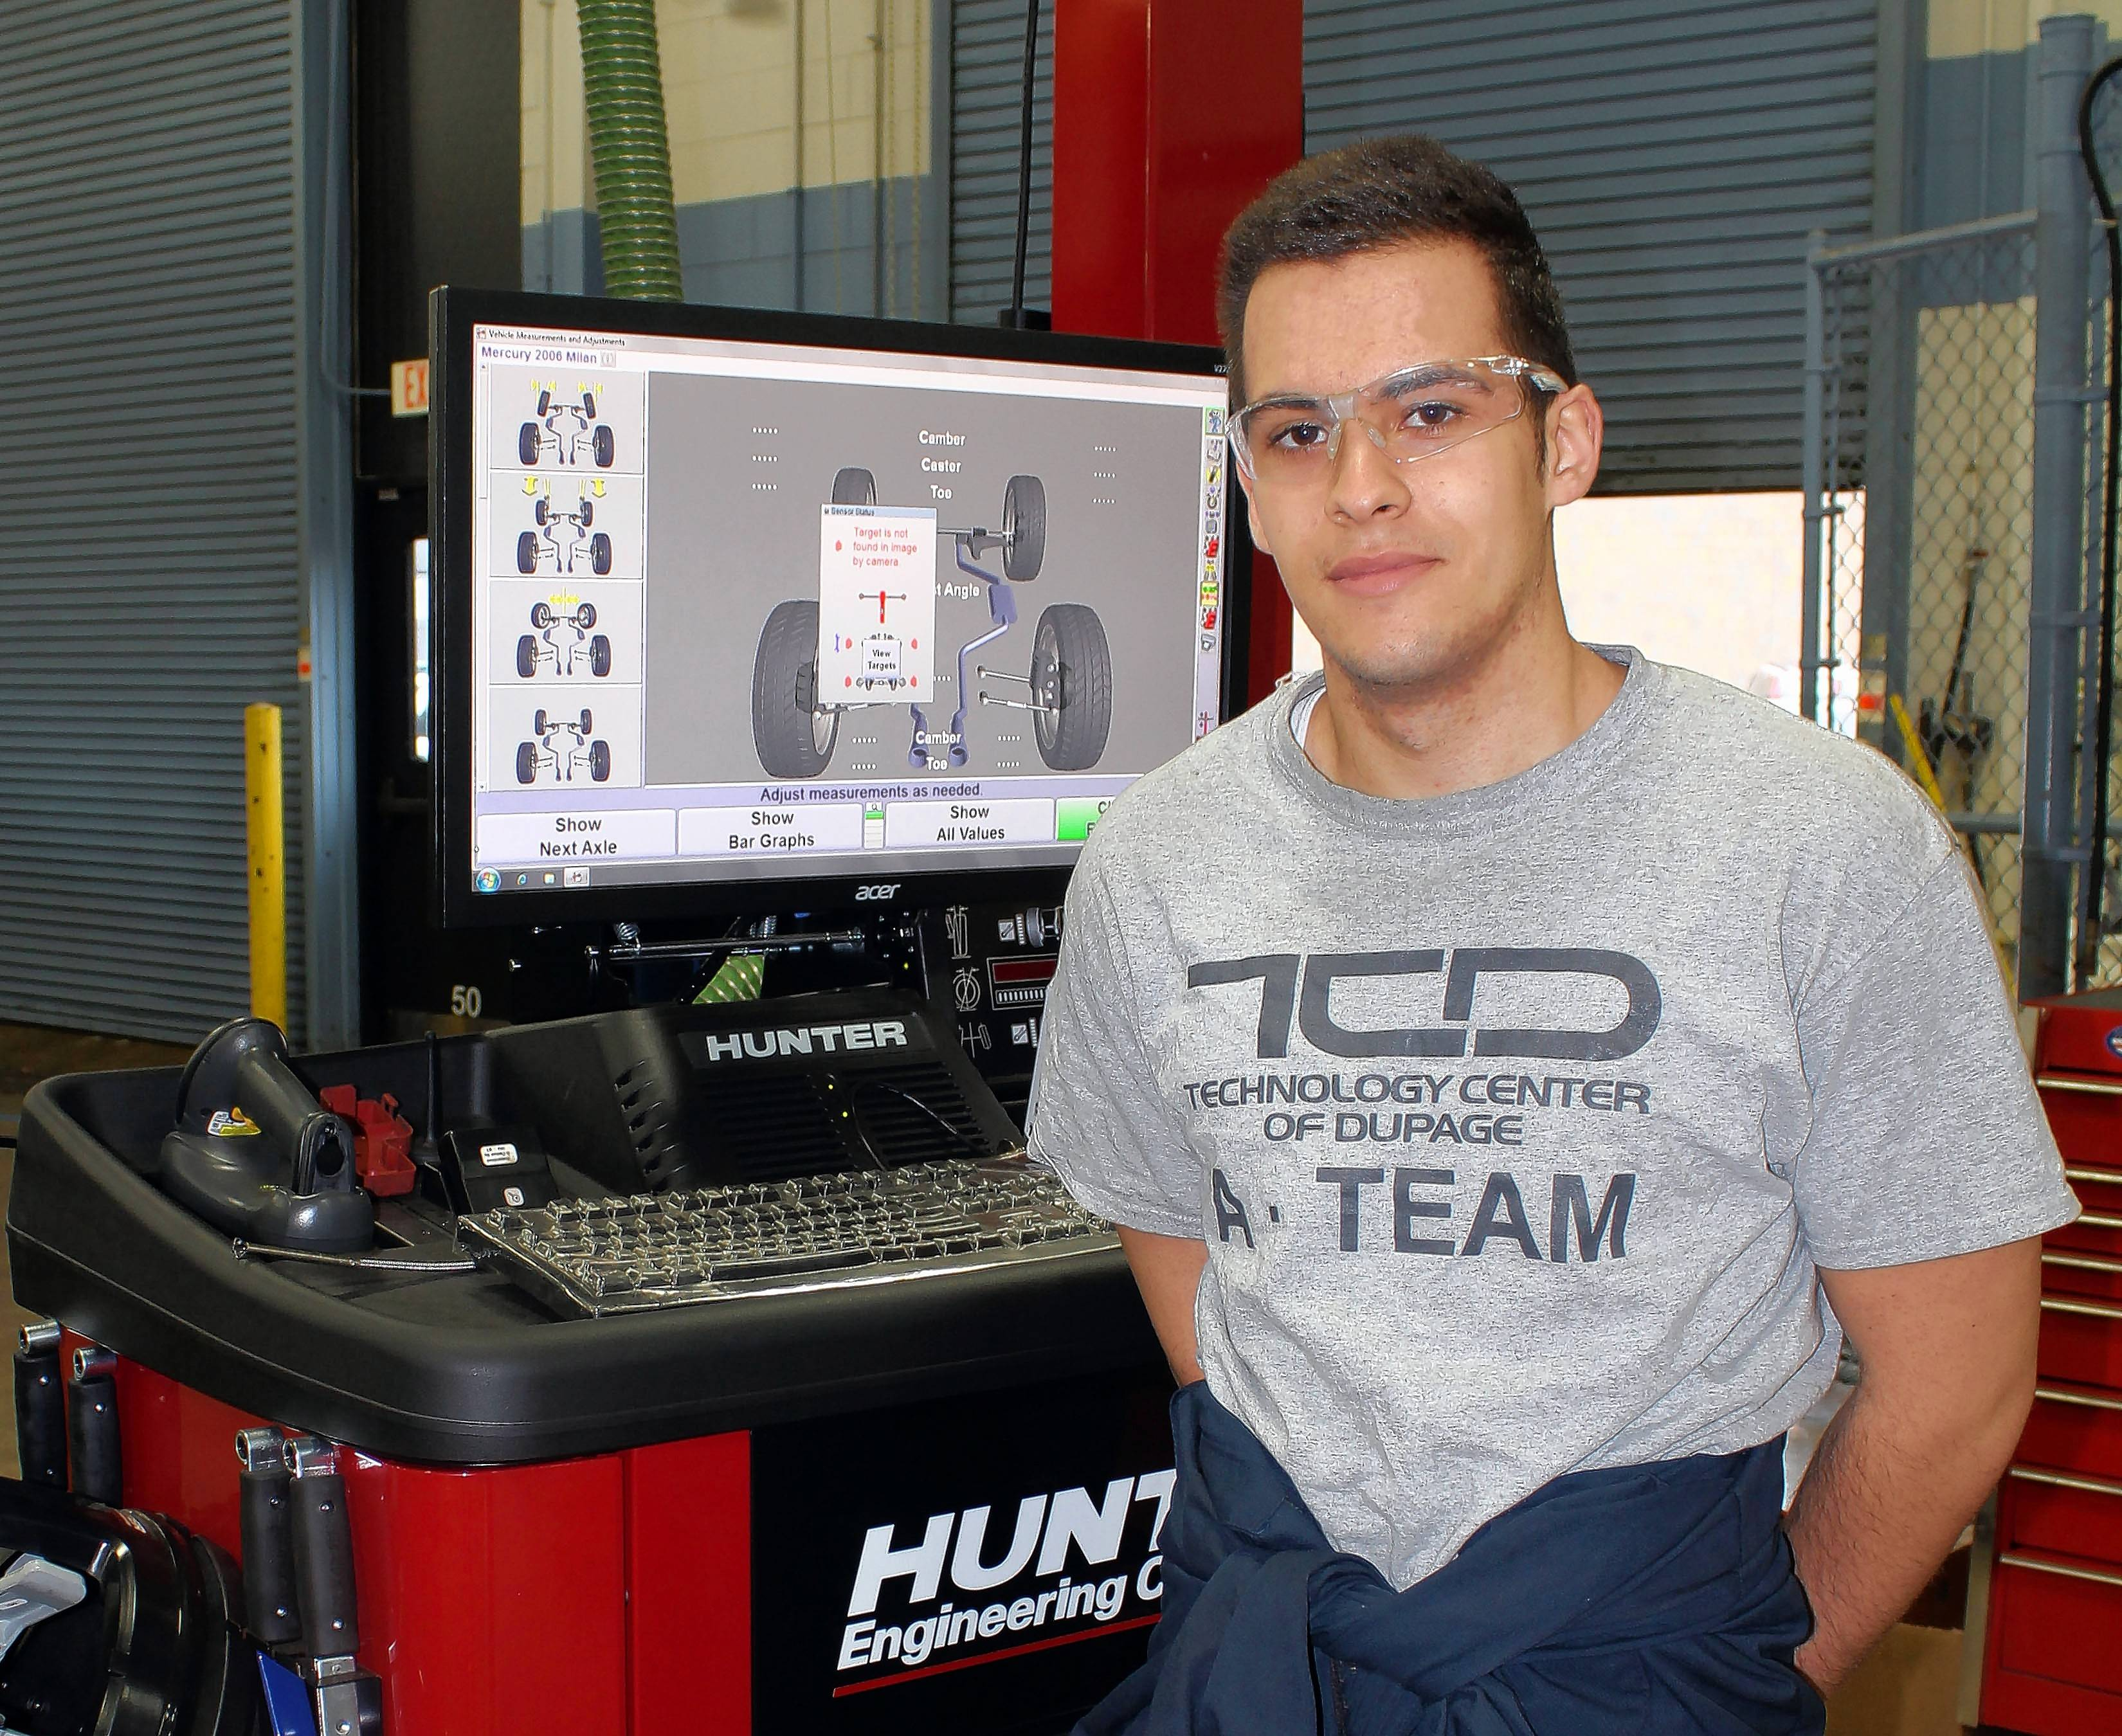 Leonardo Kekic, a senior at Lake Park High School and TCD A-Team member, demonstrates that CTE is for college bound students, too. He plans to continue in automotive technology at Southern Illinois University.